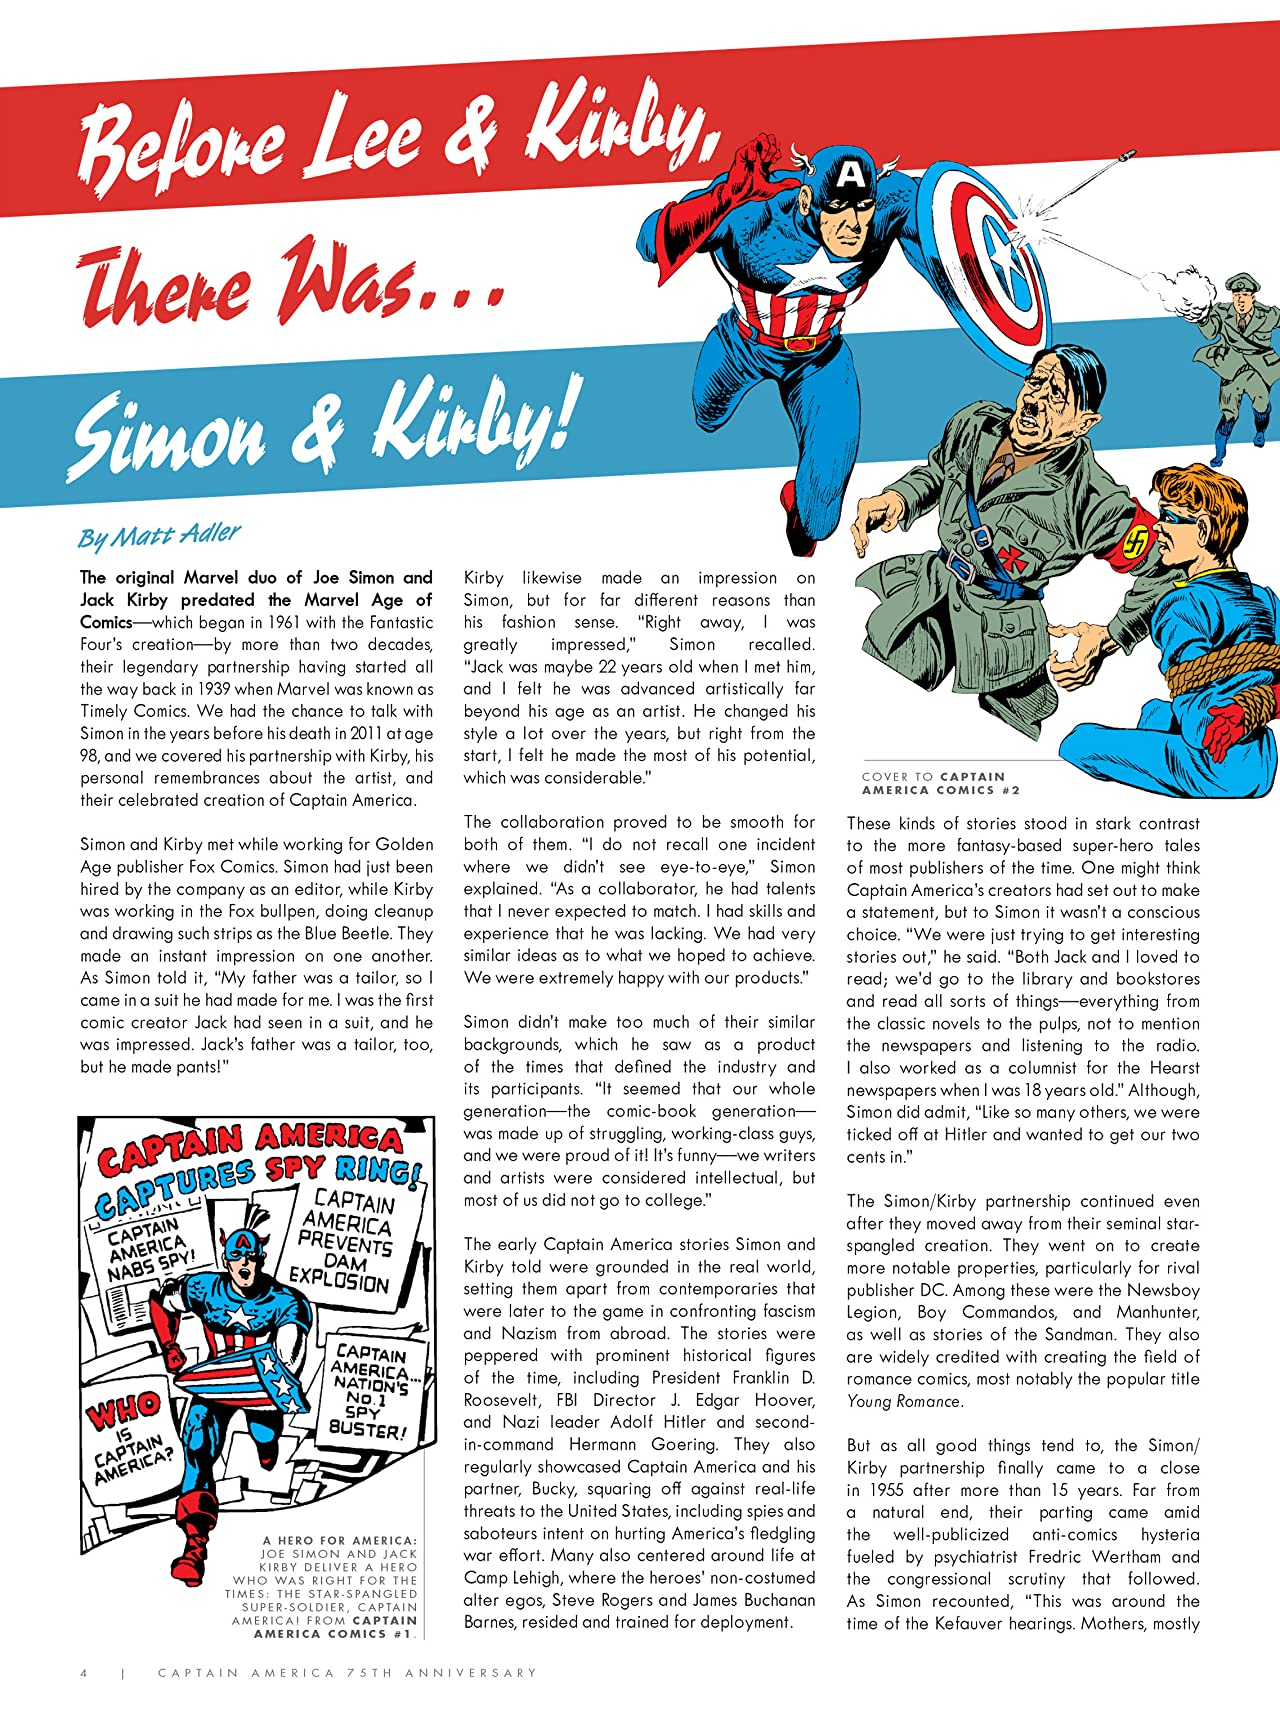 Captain America 75th Anniversary Magazine #1